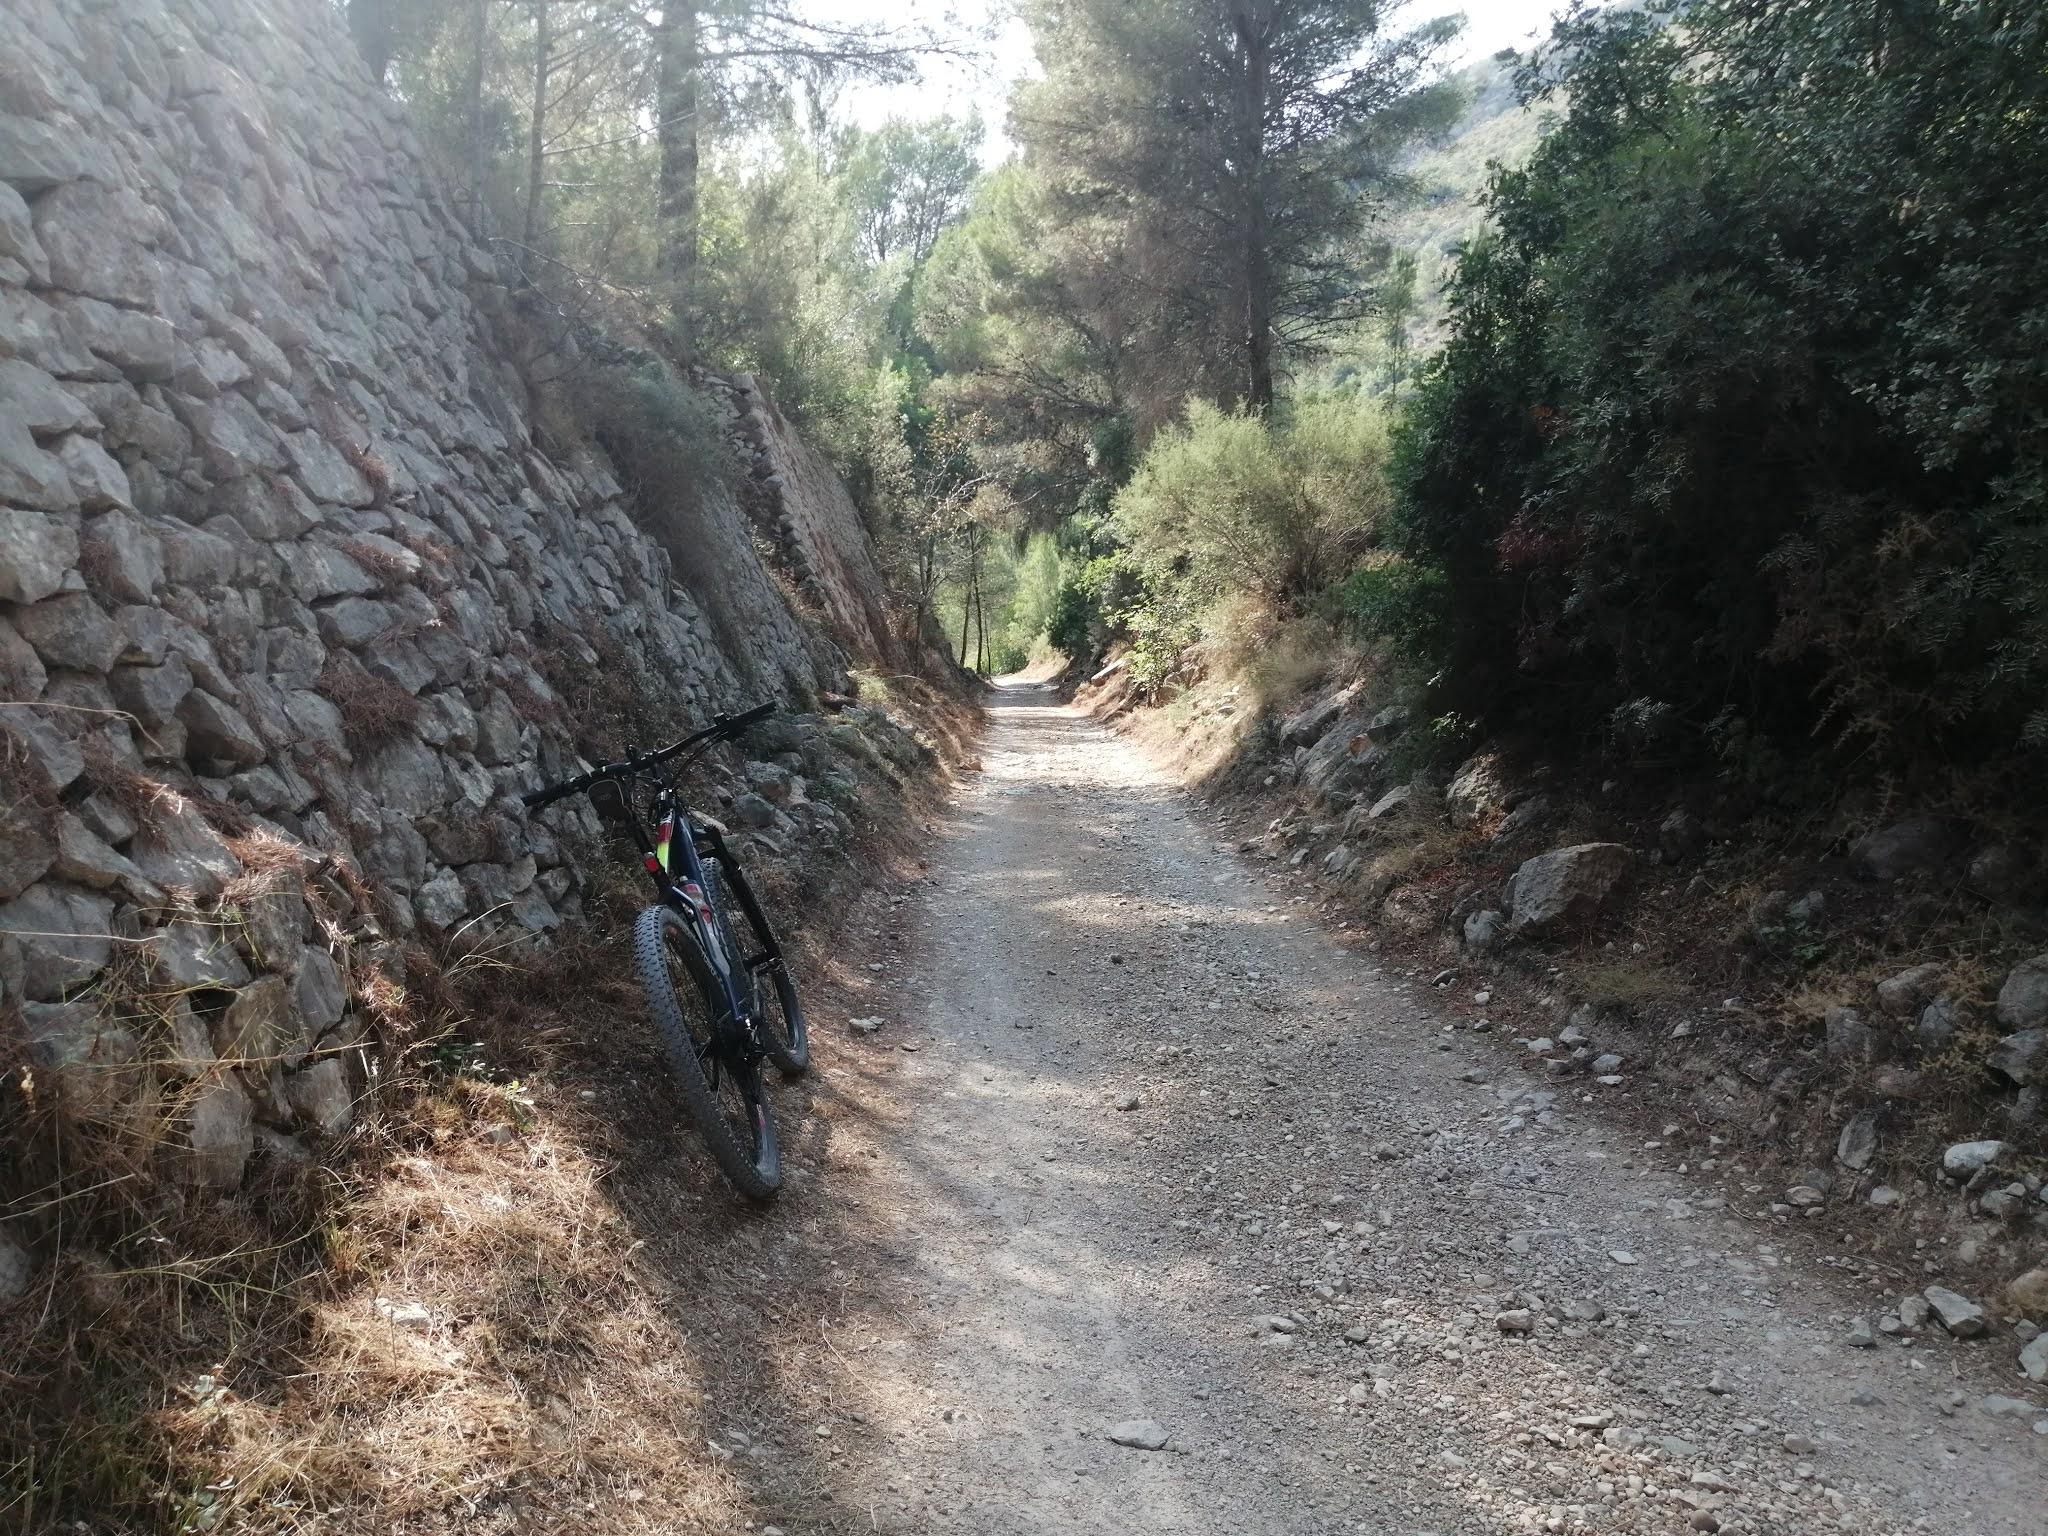 Stone-walled railway cutting on the River Serpis Greenway, Spain